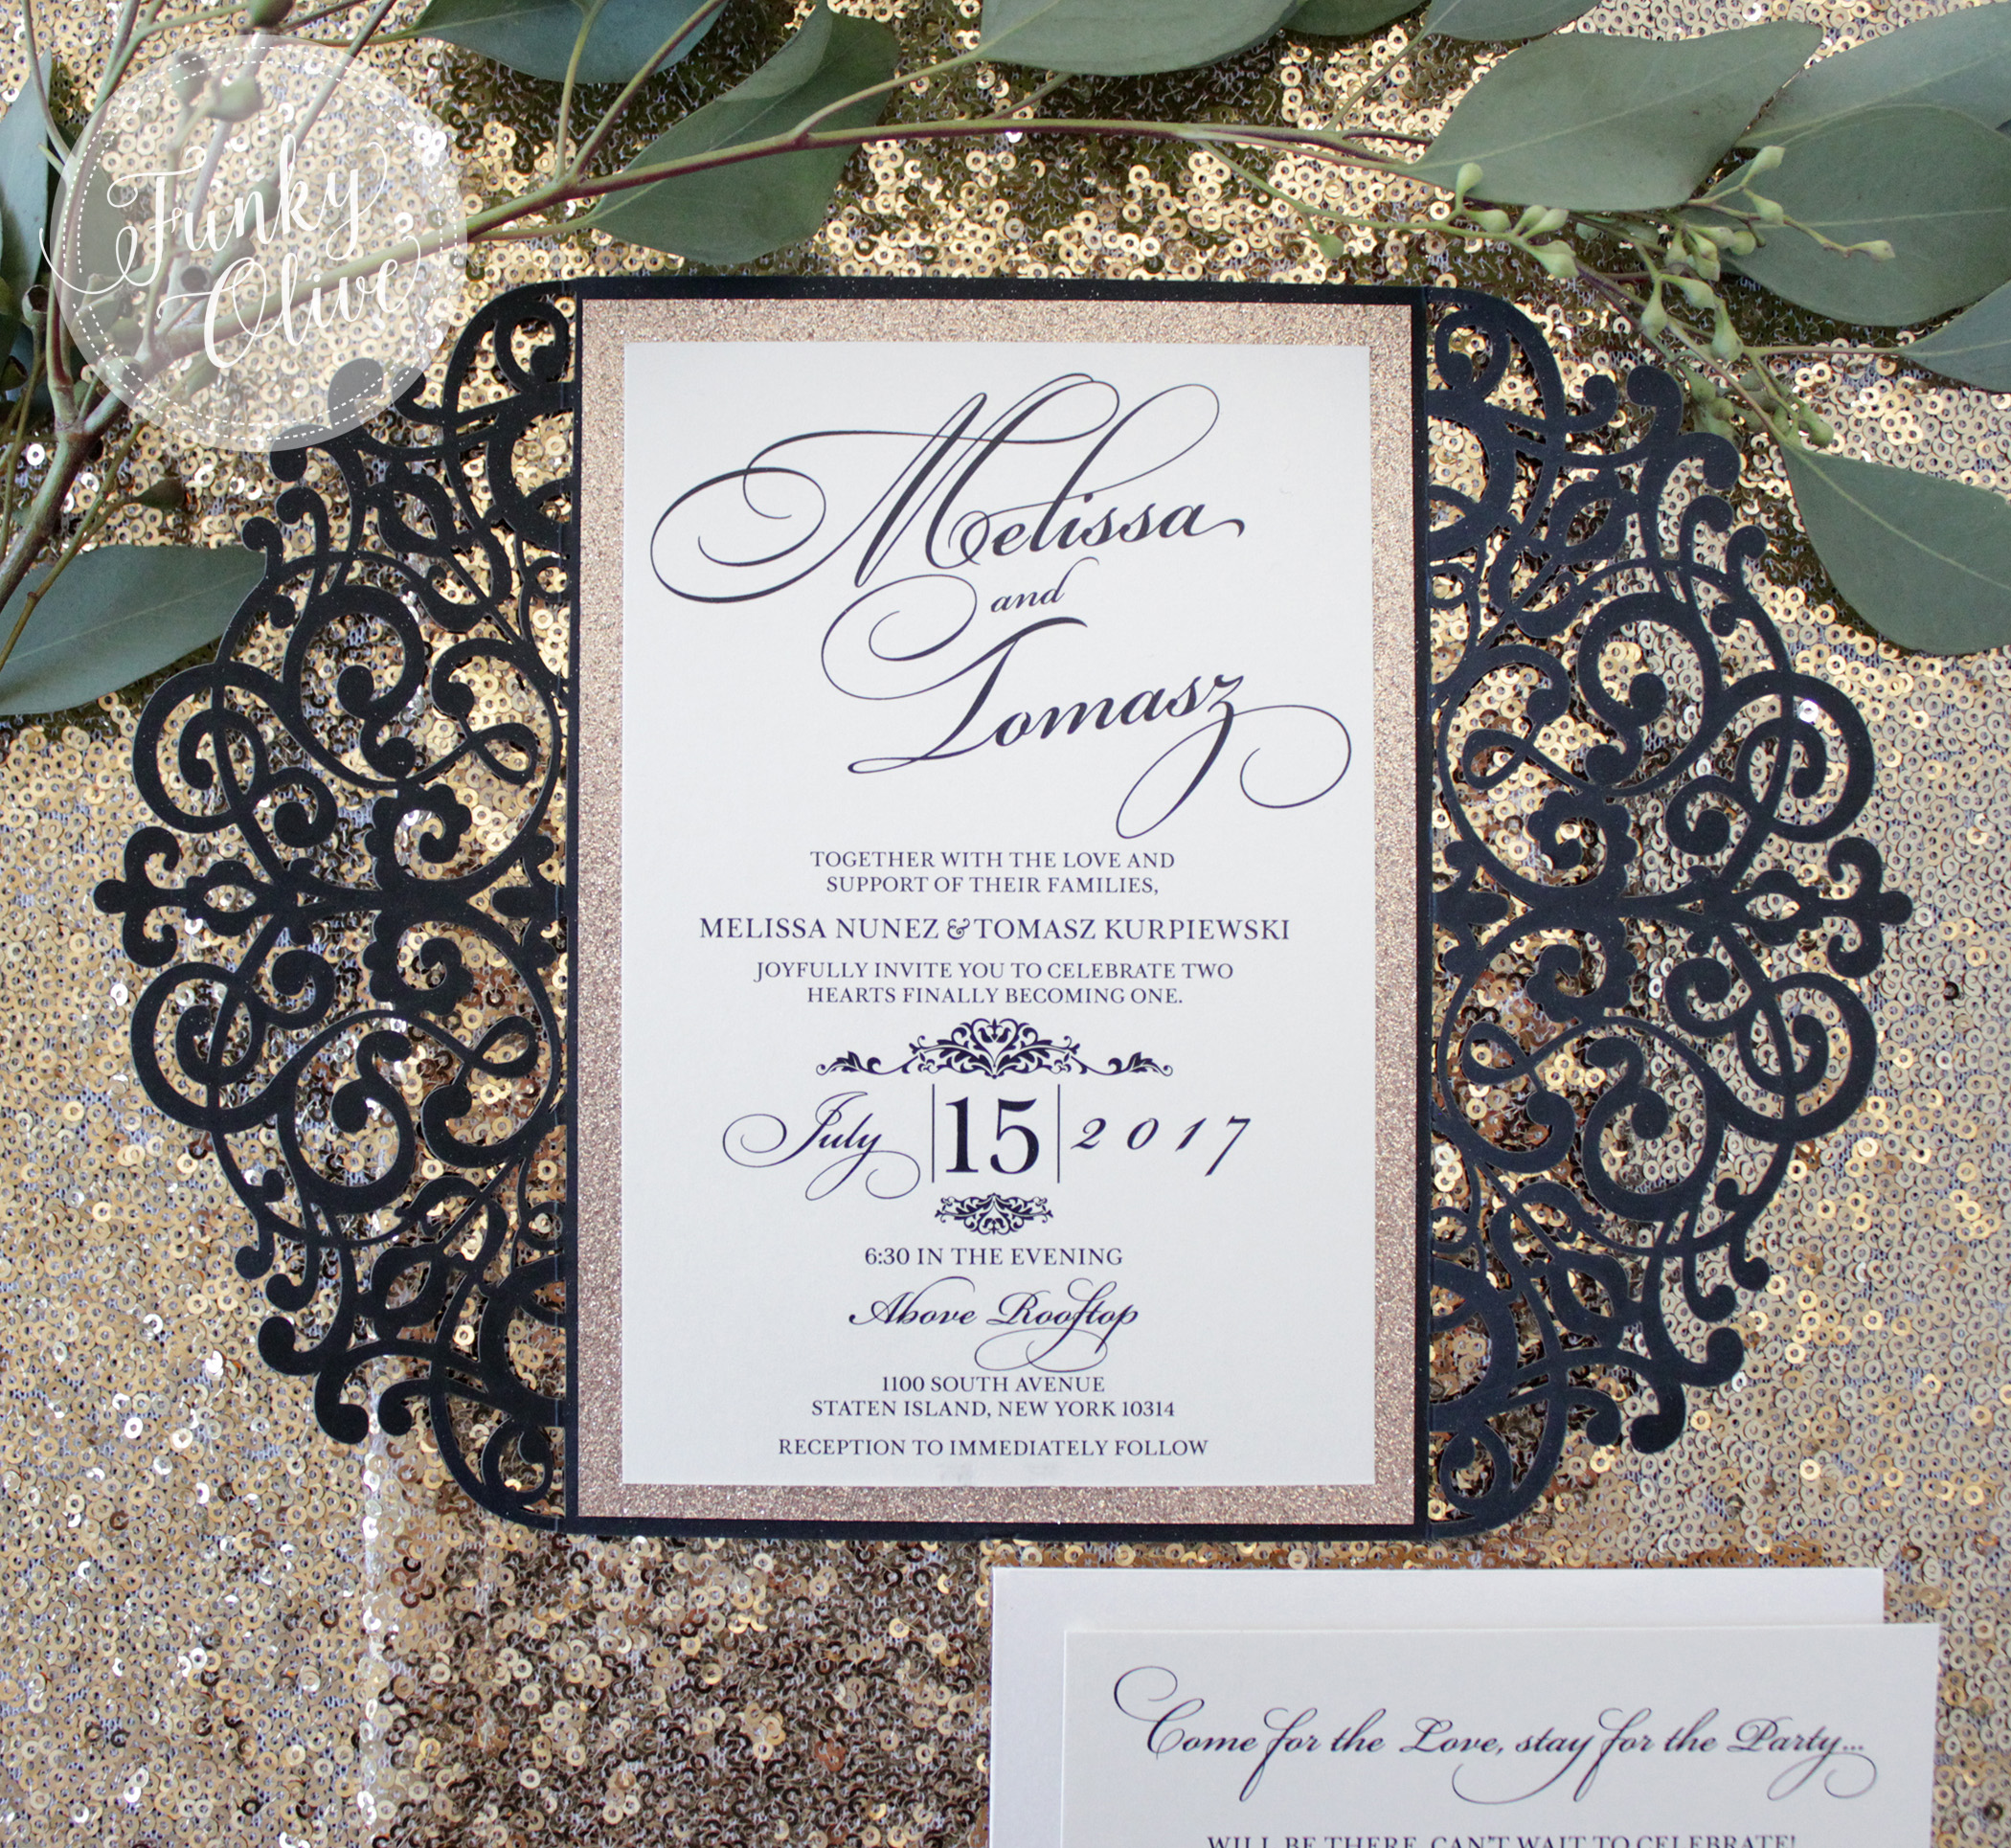 Laser Cut Backings - Intricate and elegant. Perfect with paired with glitter backings.